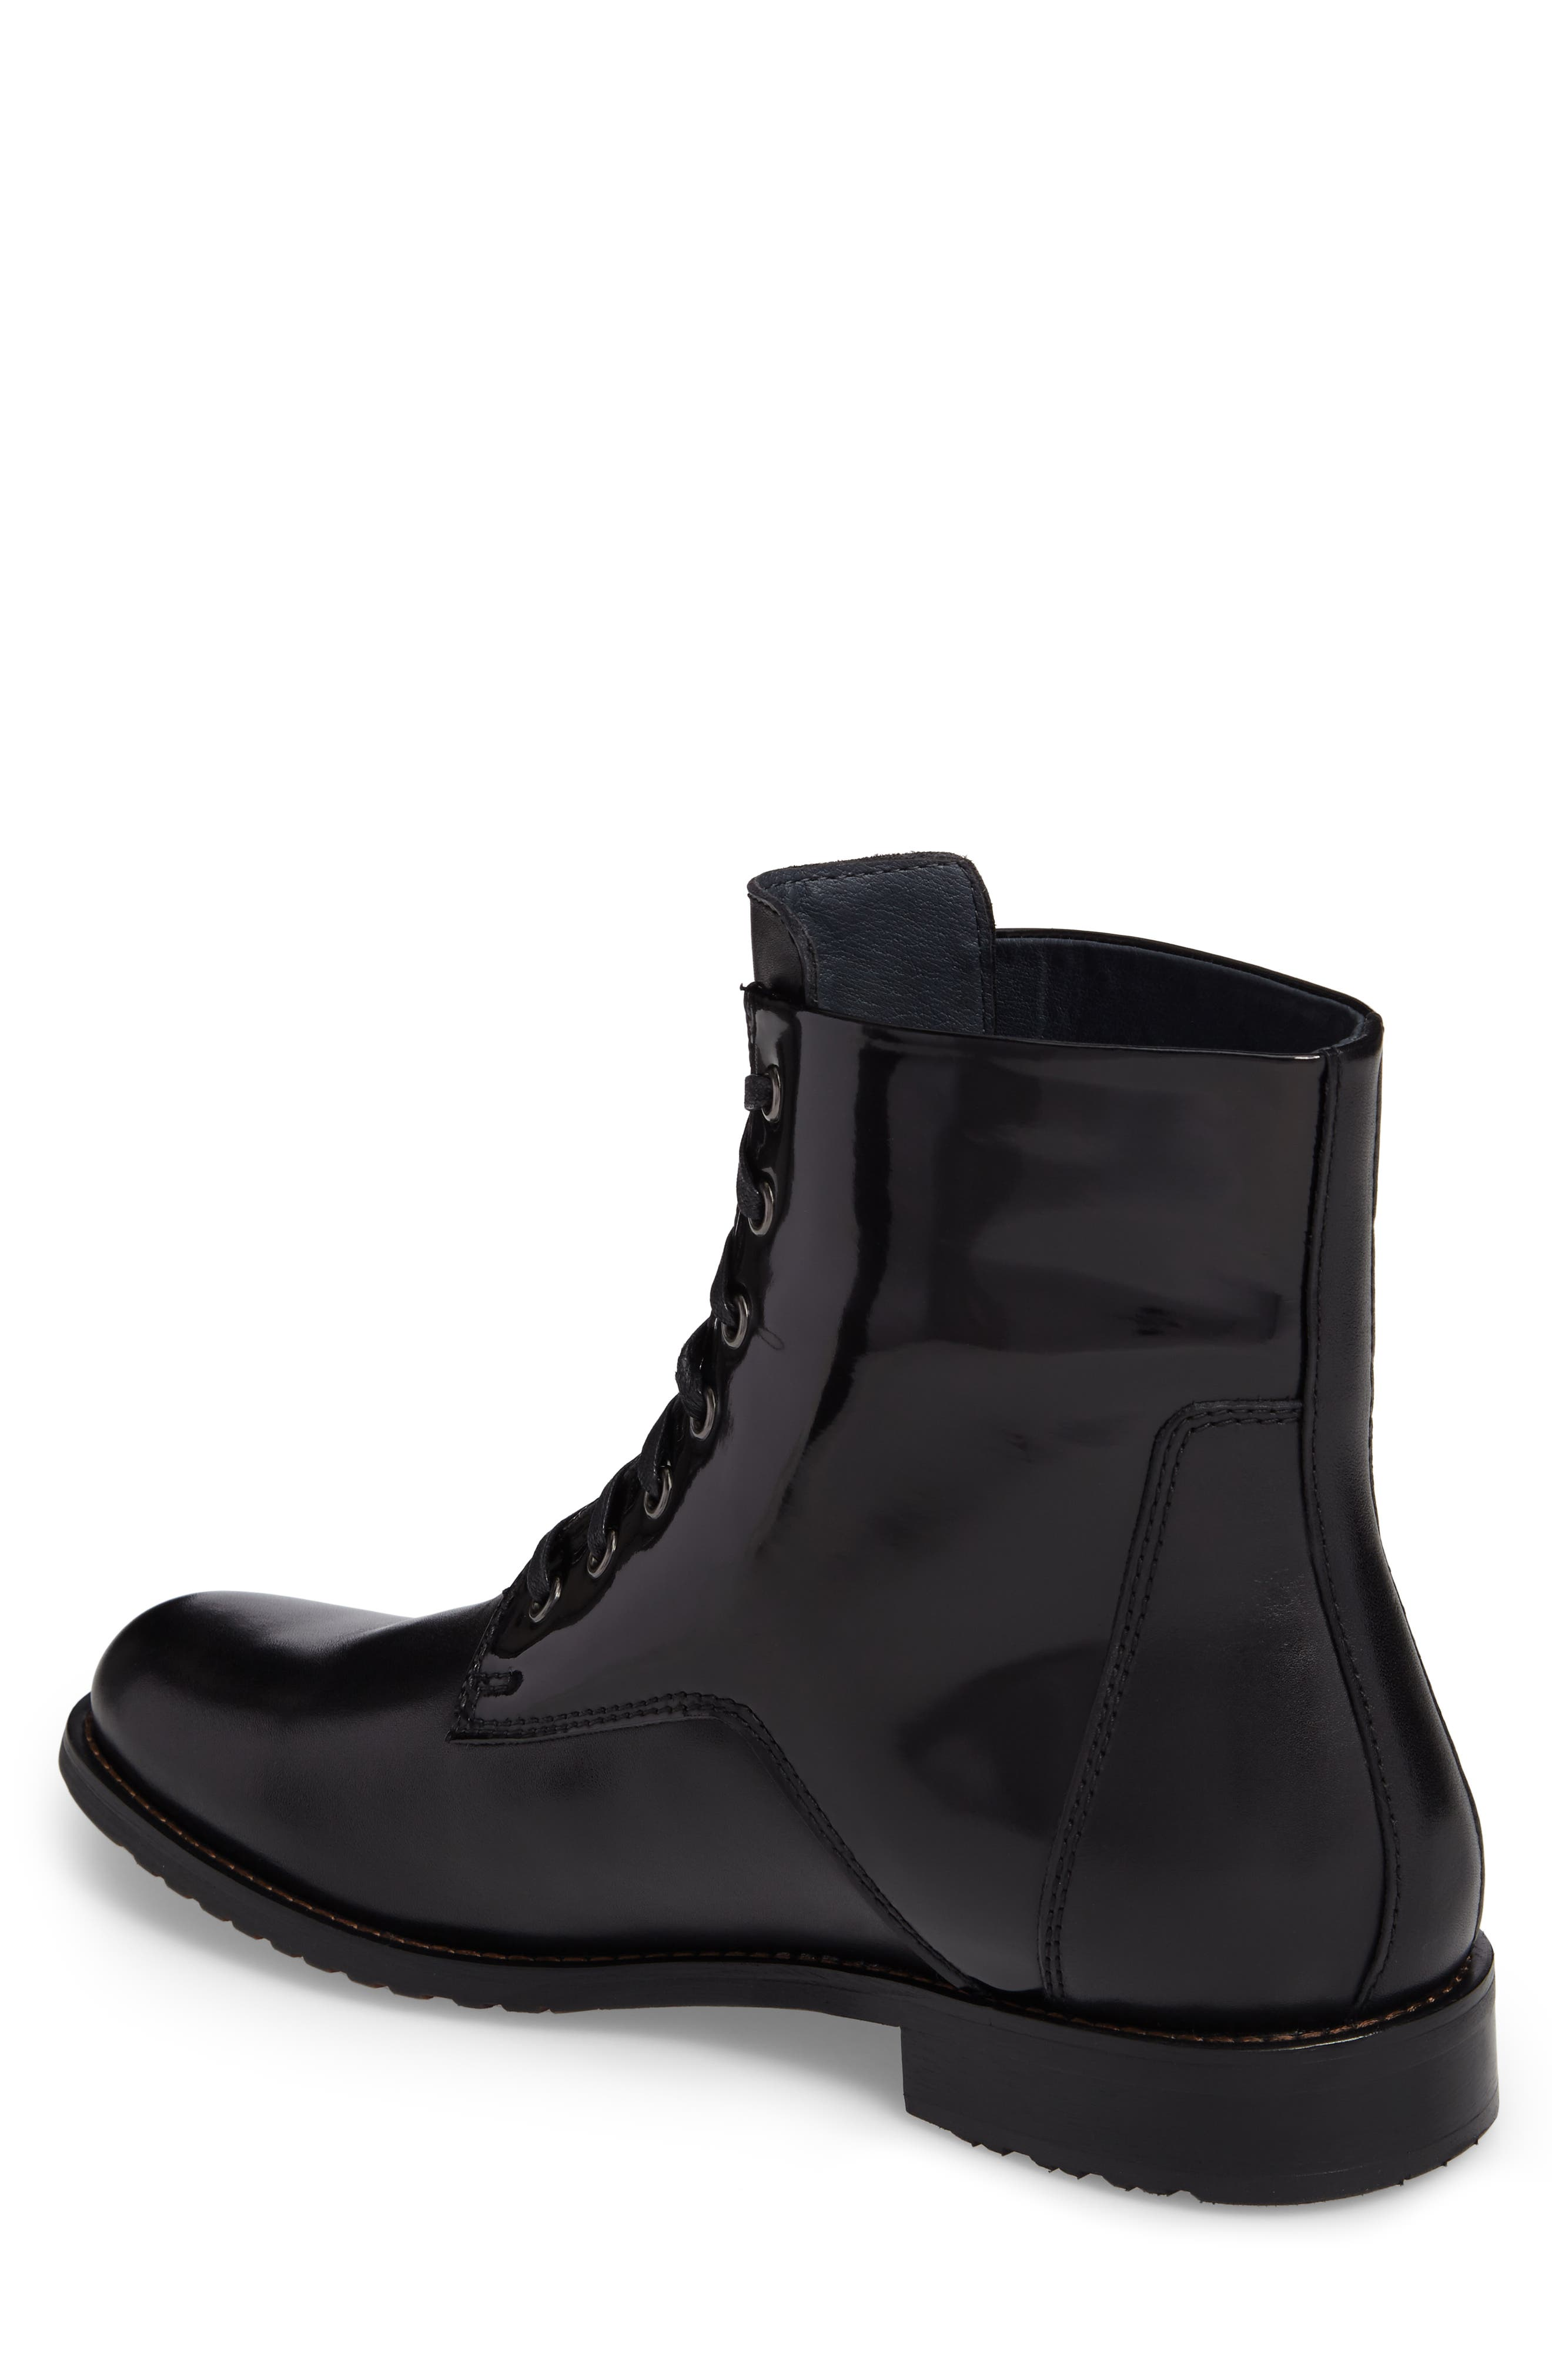 Athol Plain Toe Boot,                             Alternate thumbnail 2, color,                             001